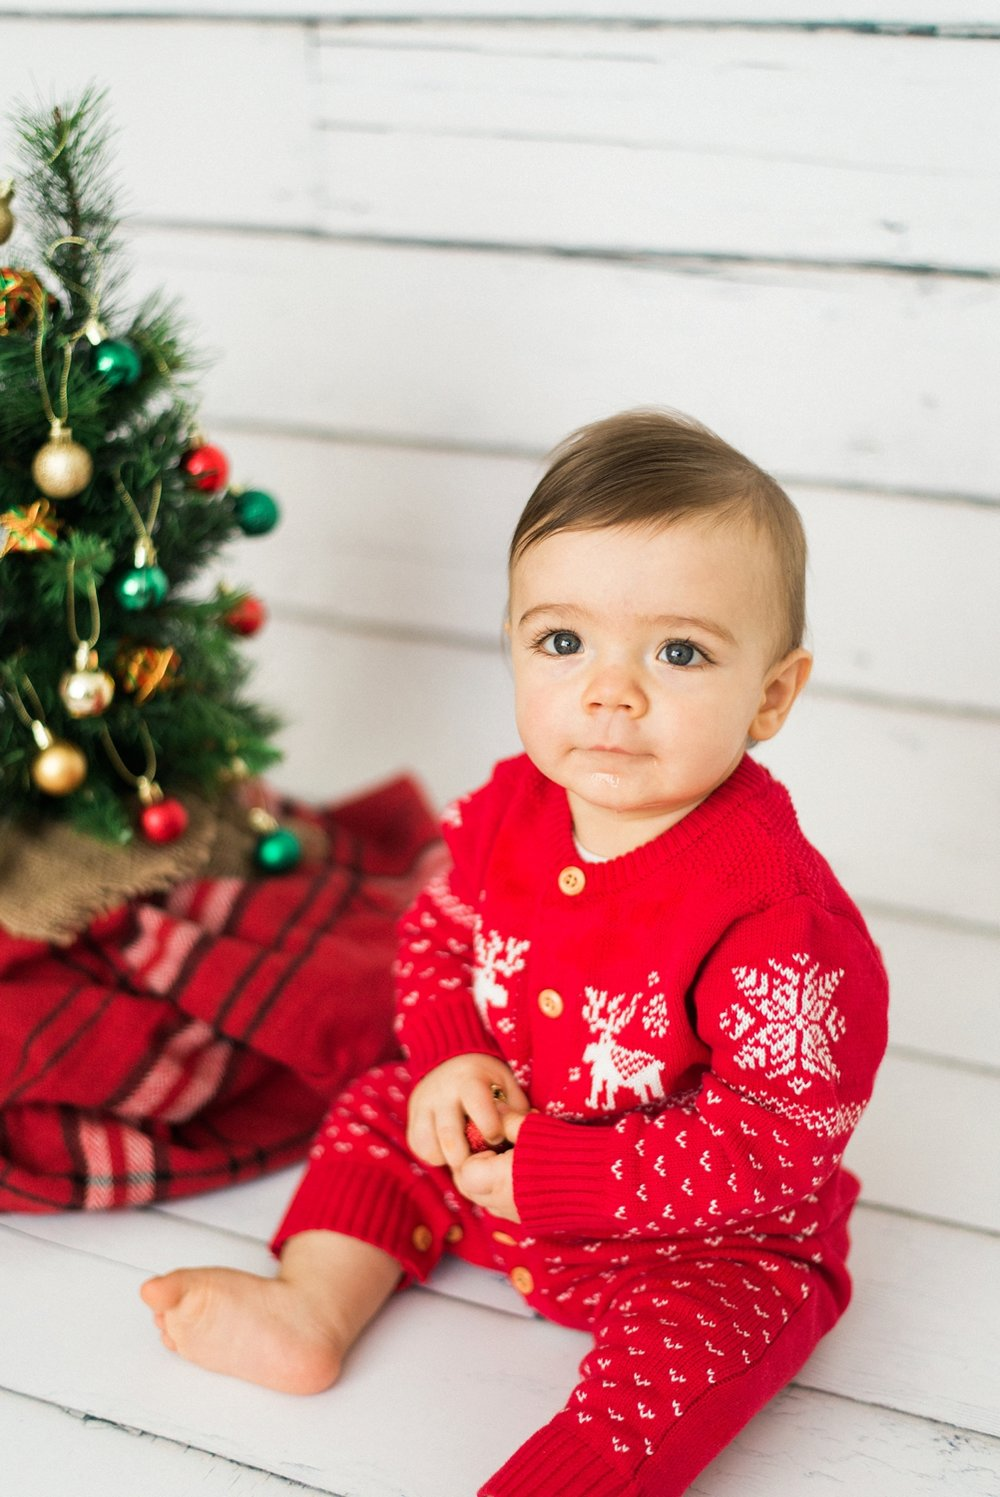 portland-newborn-christmas-tree-holiday-photos-1-year-baby-portrait-session-084_cr.jpg